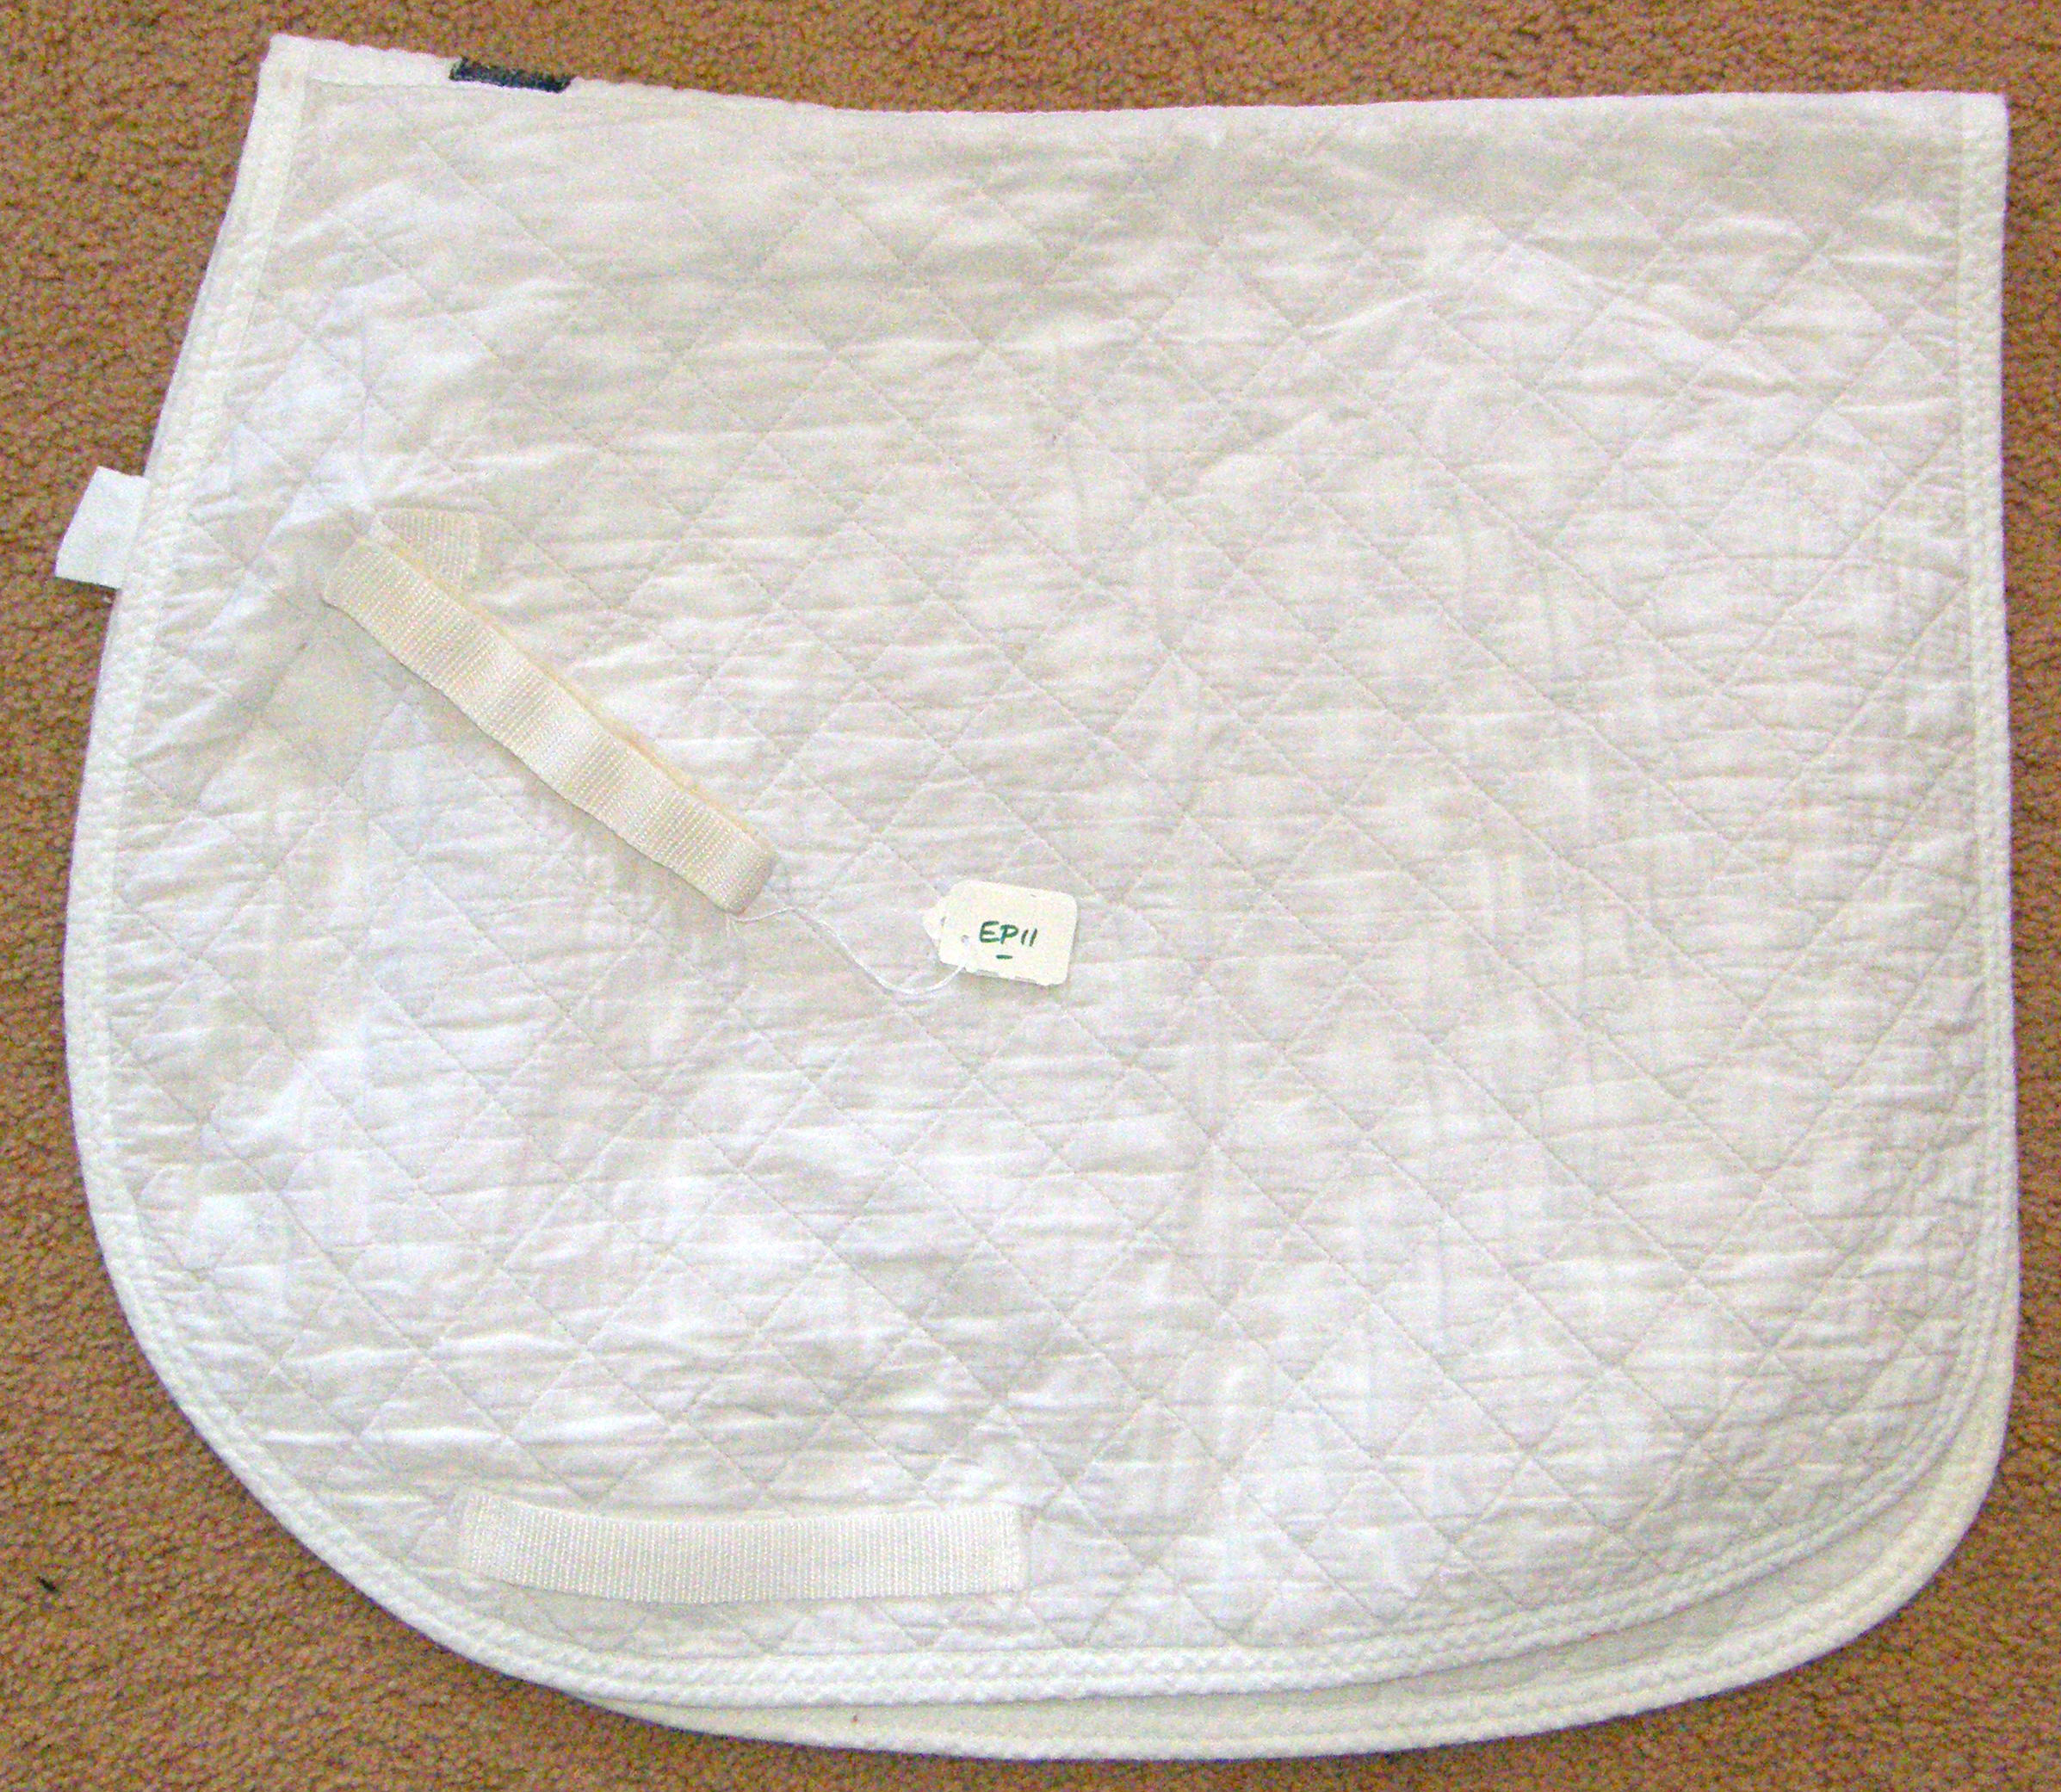 Dover Thin Quilted Dressage Pad Quilted Cotton Event Pad English Saddle Pad